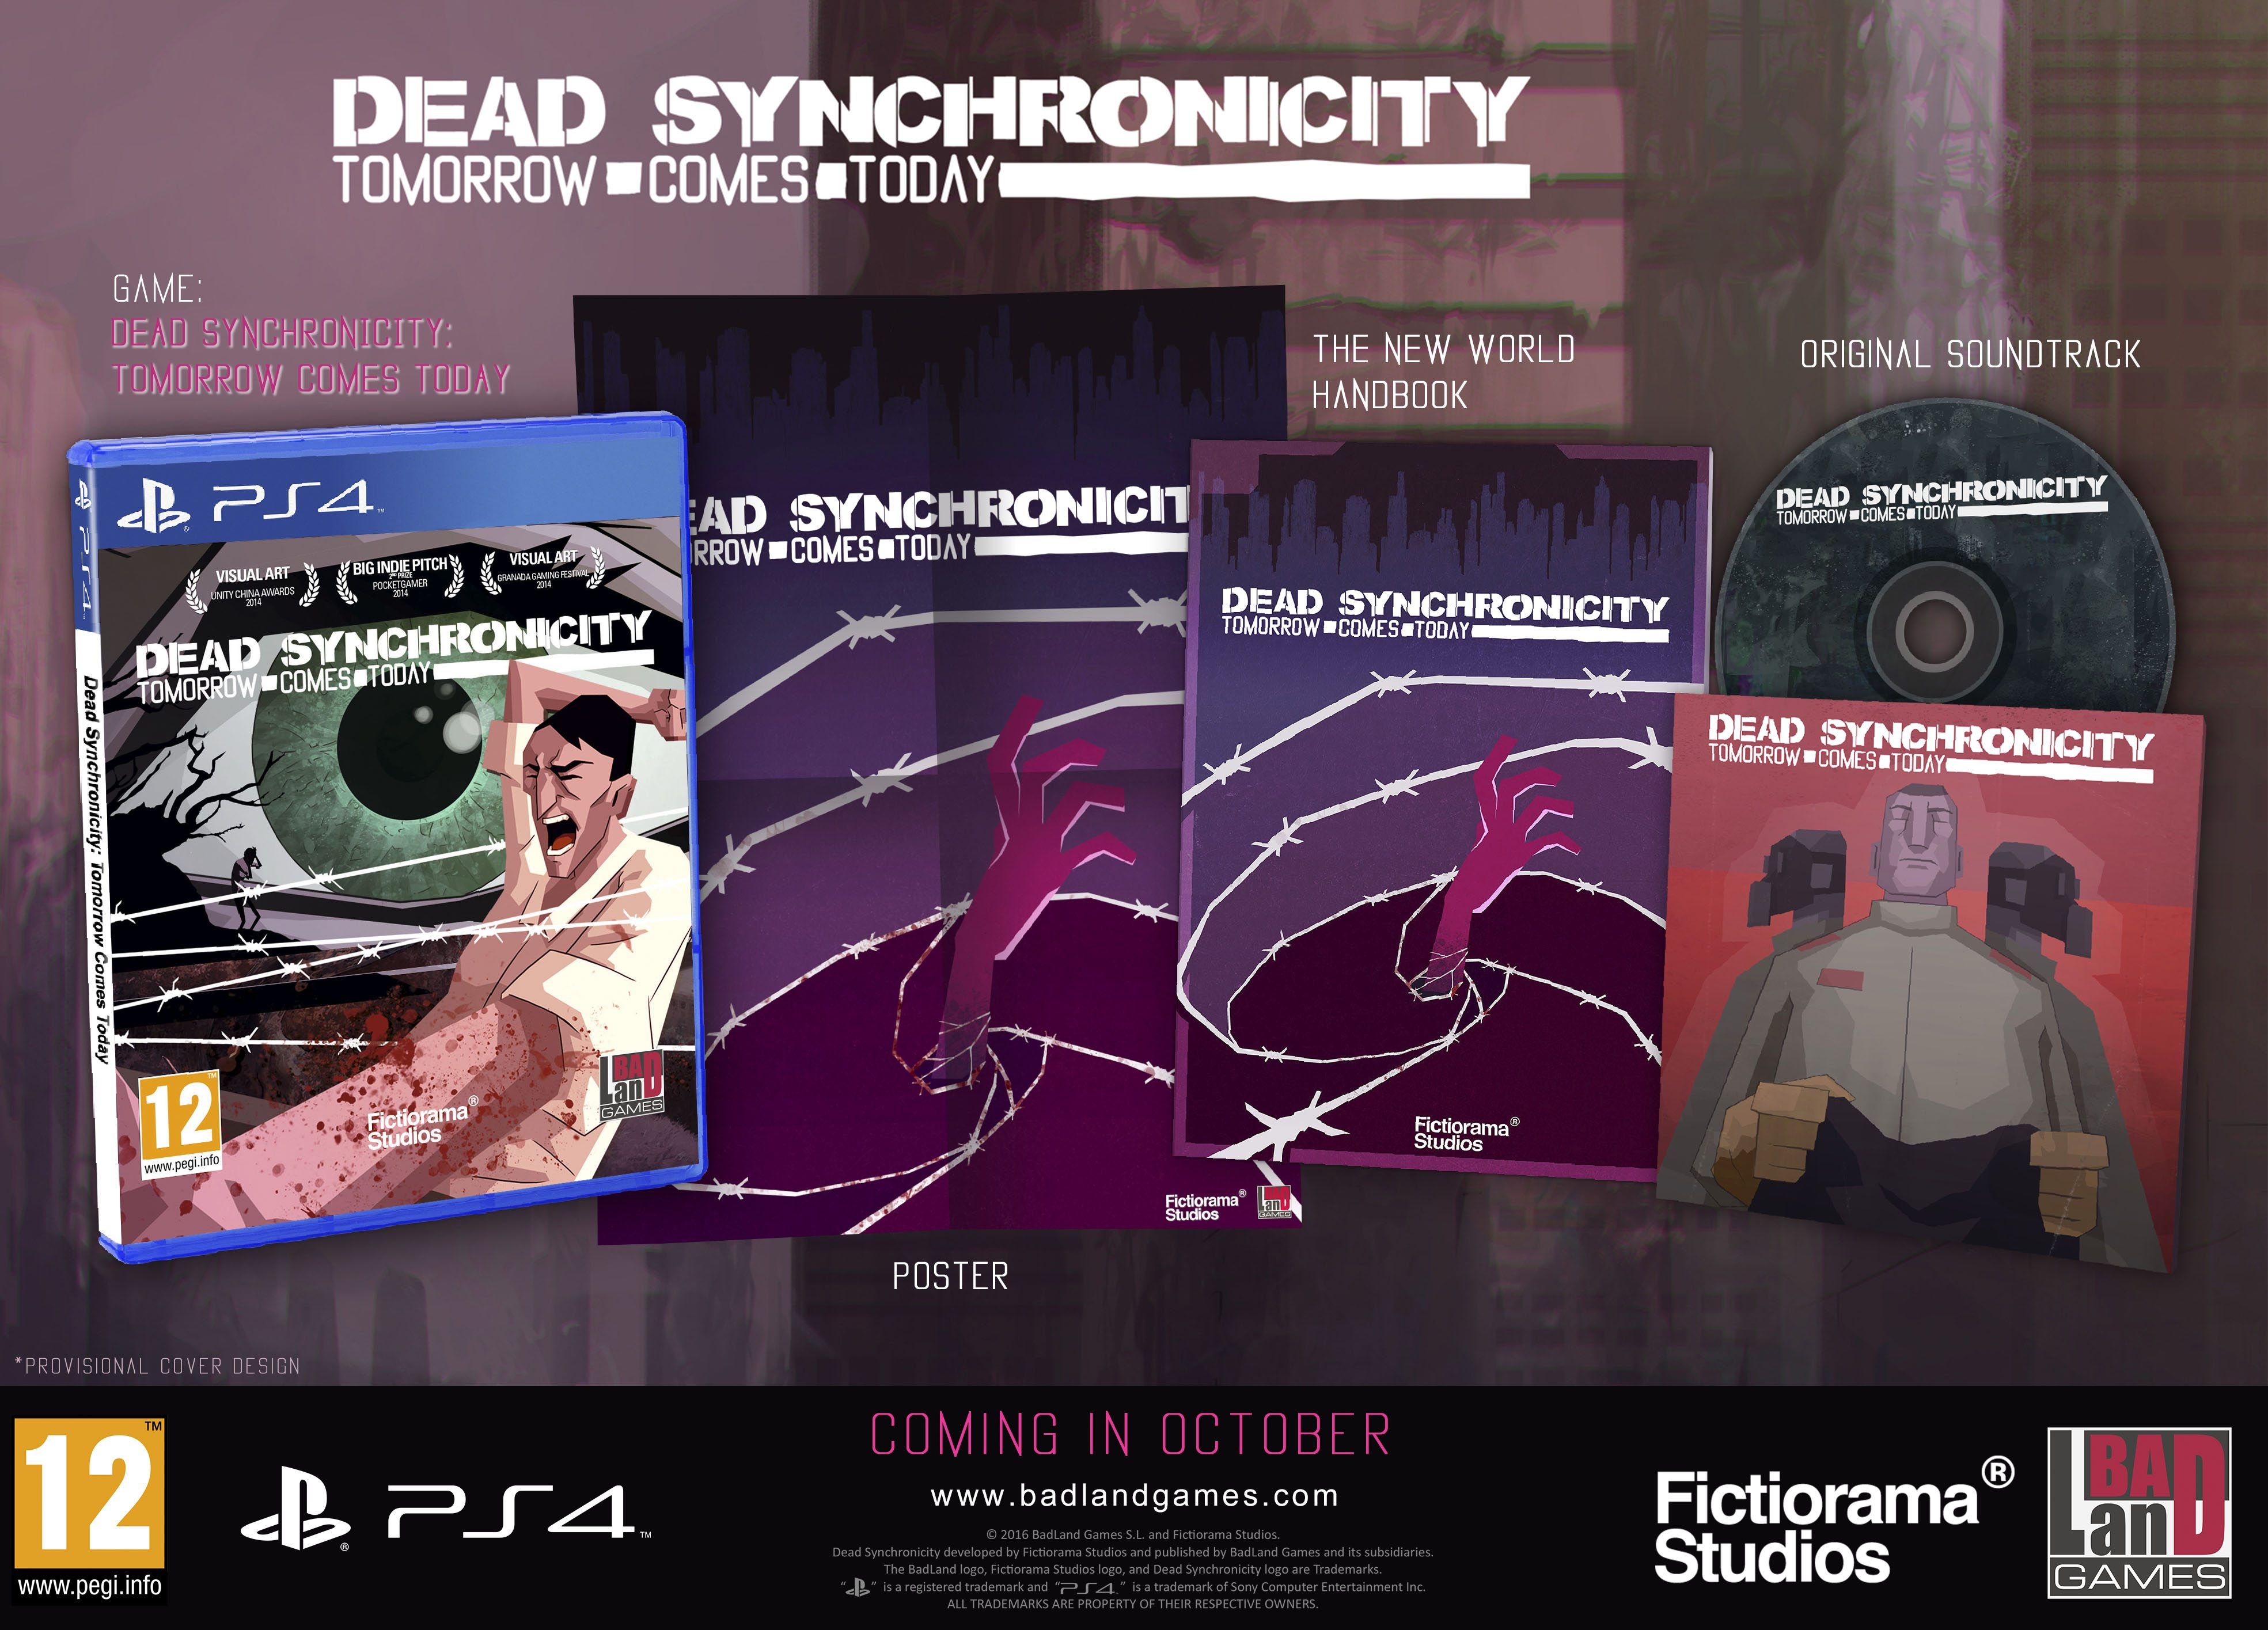 DEAD SYNCHRONICITY: Tomorrow Comes Today Now Available on PS4